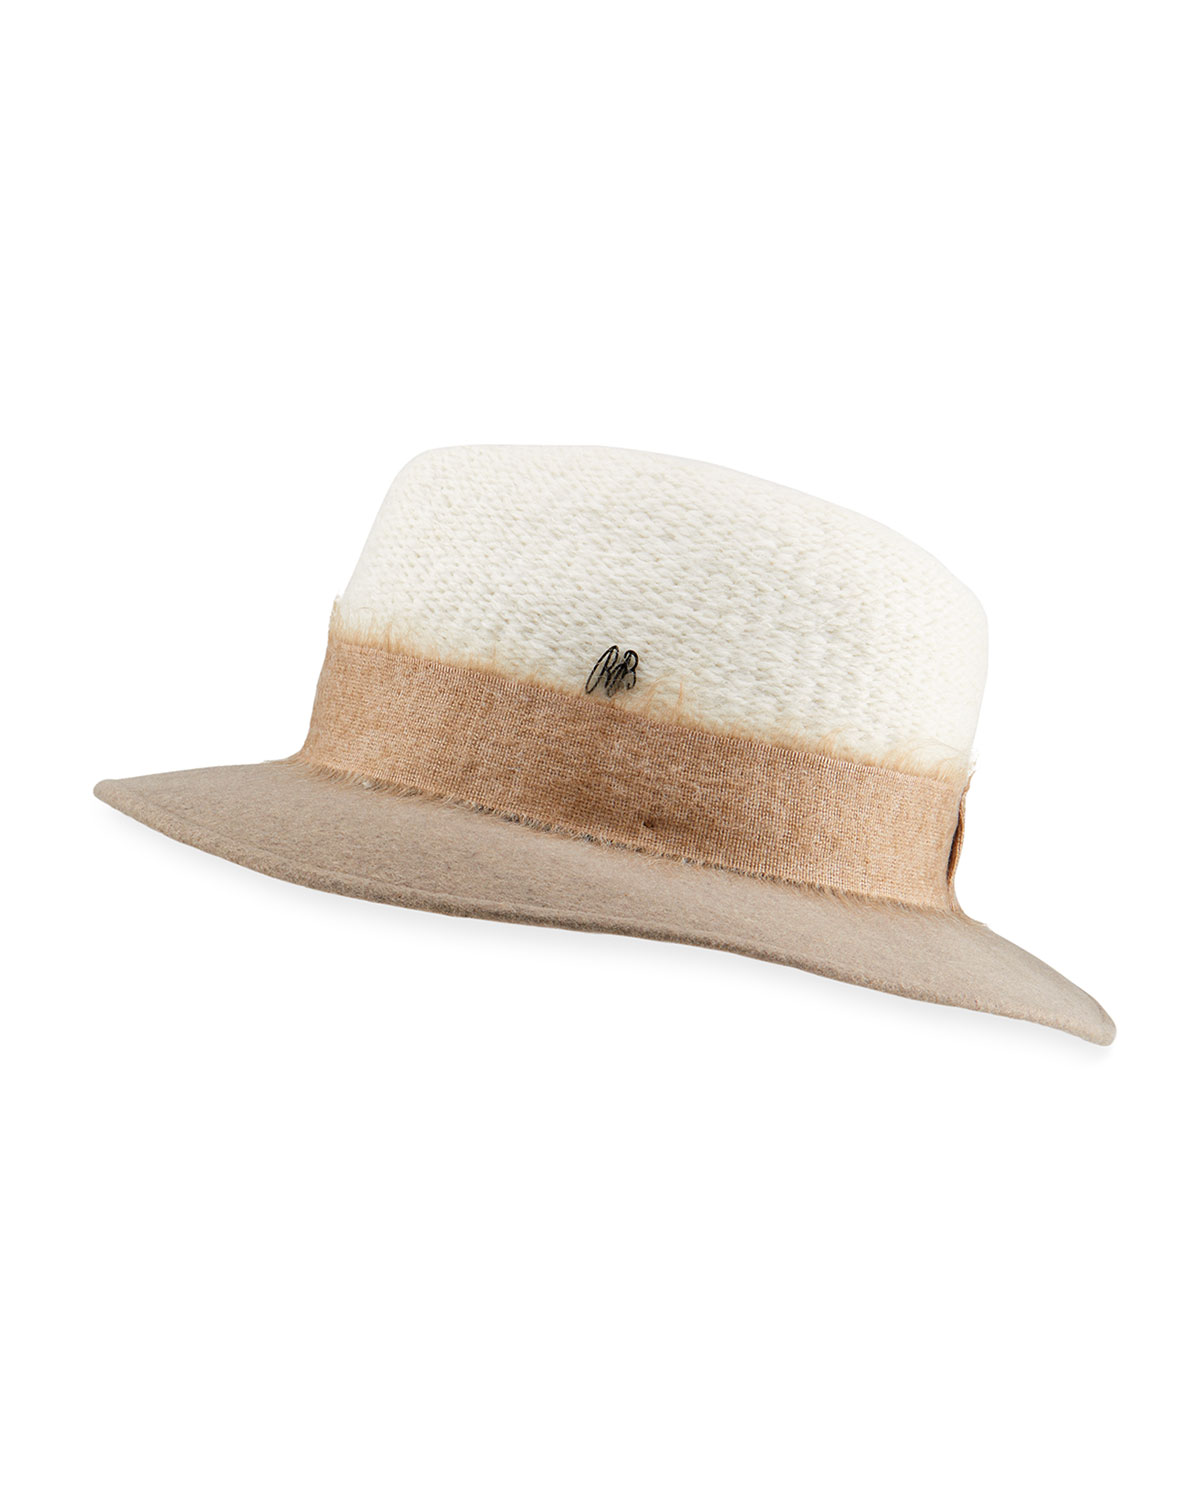 Raffaello Bettini MIXED FELT FEDORA